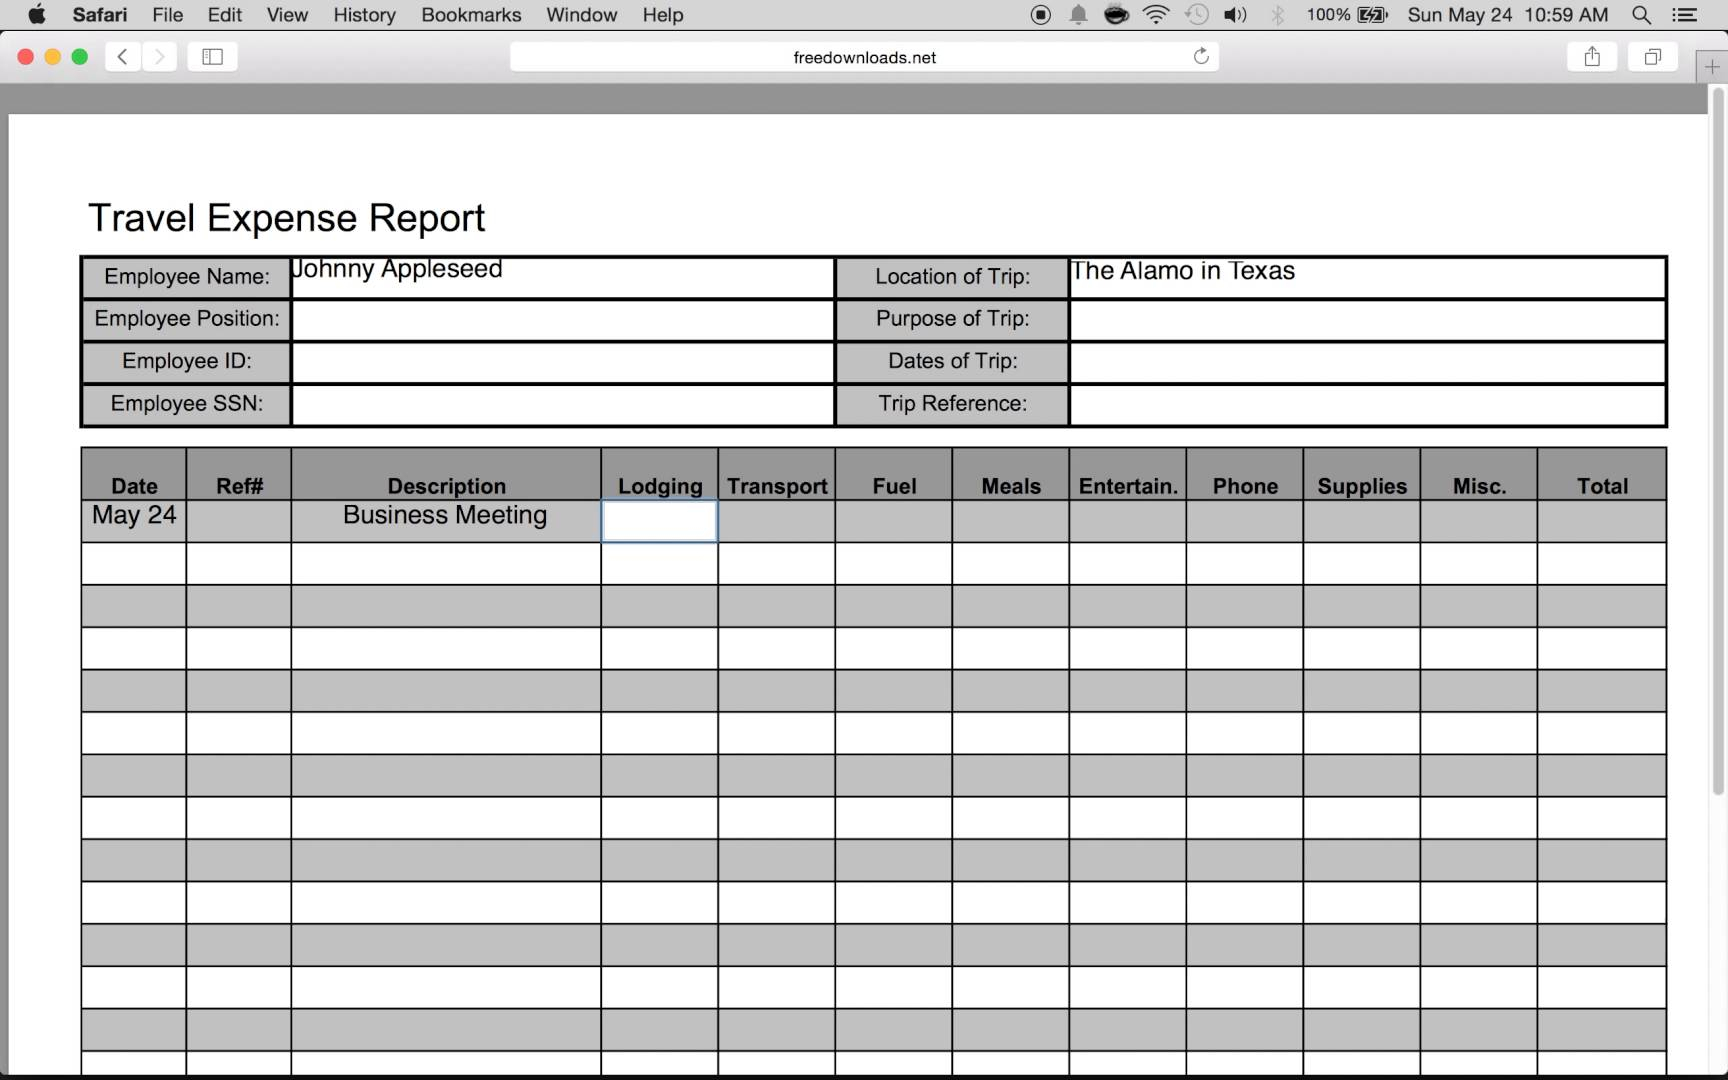 Travel Expense Form Template Excel #c7Bd1E7B0C50 - Proshredelite For Excel Business Travel Expense Template